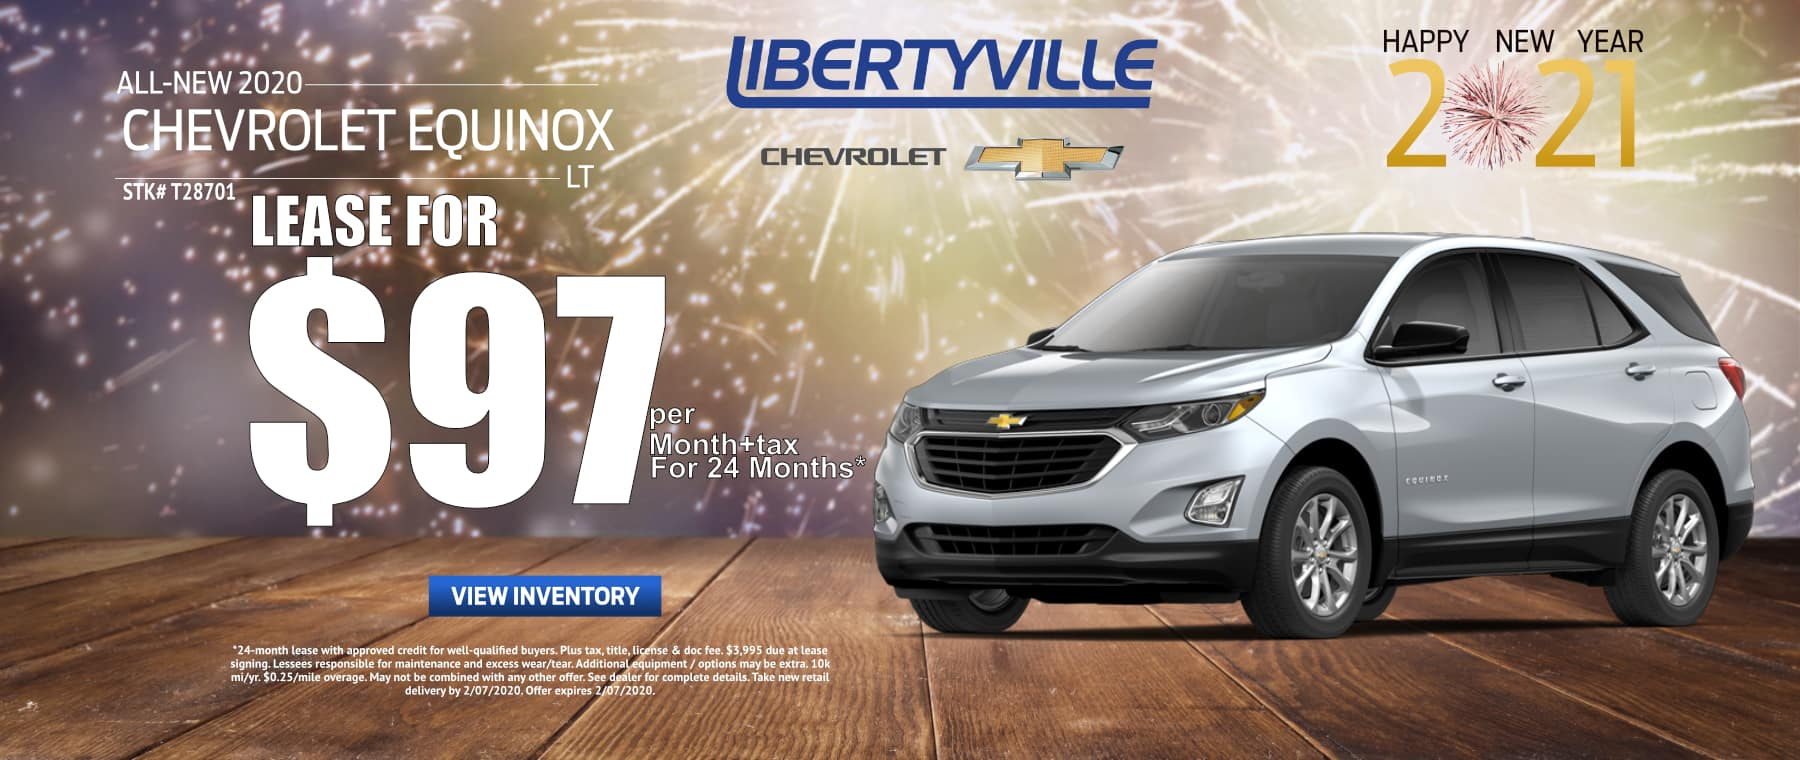 January-2021_Equinox_LS_Lease_Libertyville